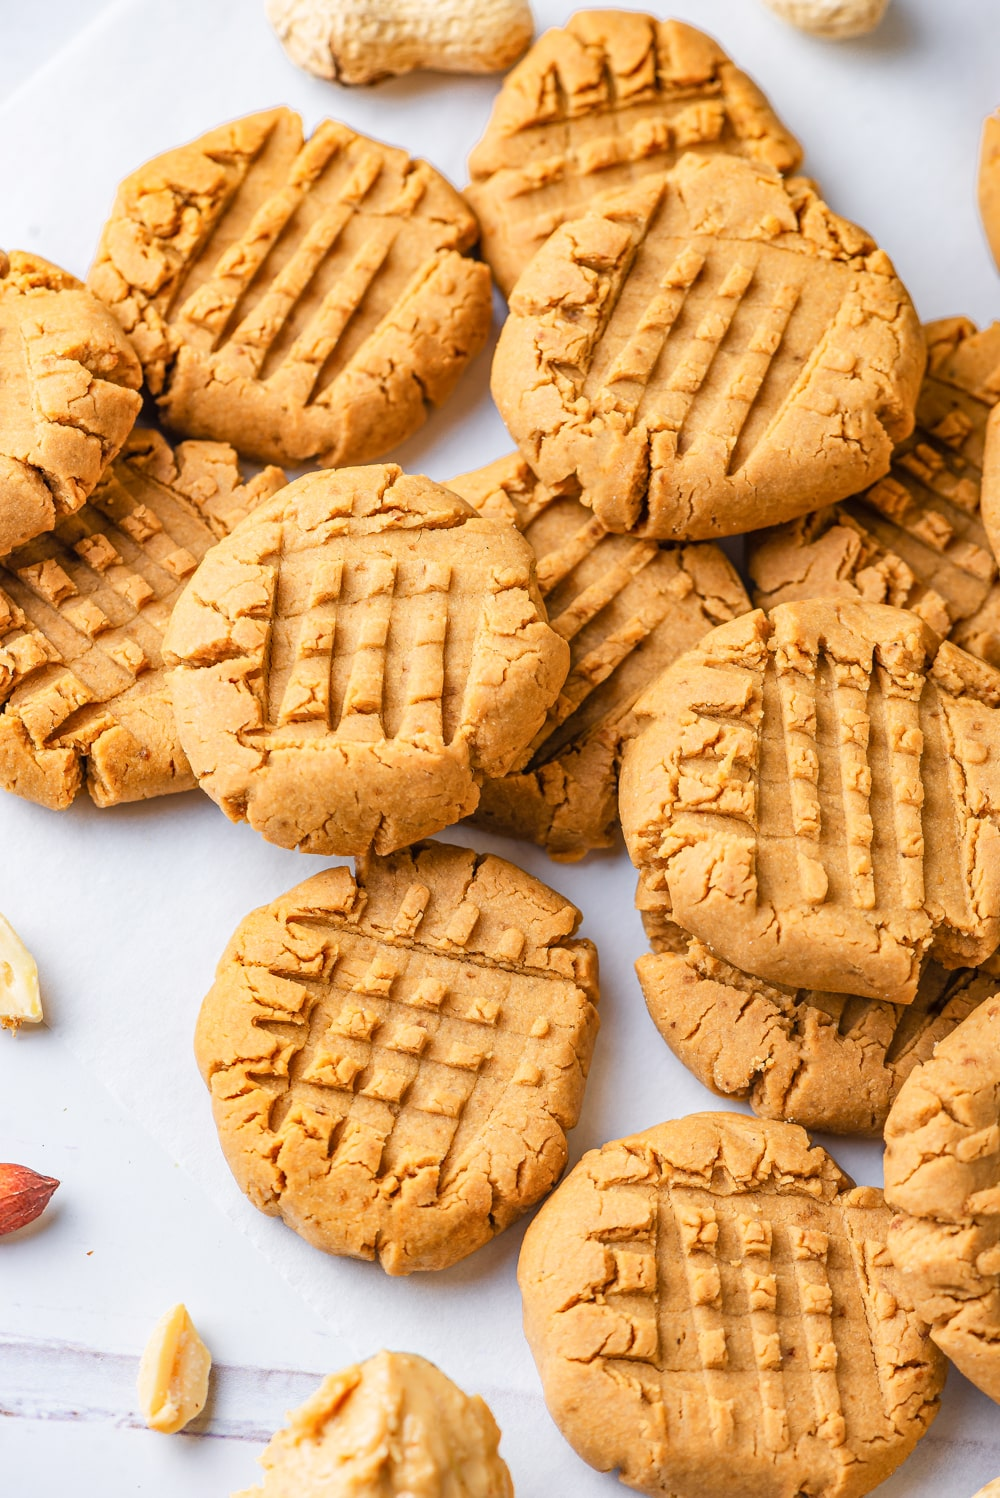 Vegan peanut butter cookies scattered on a white counter with some cookie on top of each other and some overlapping the other cookies,